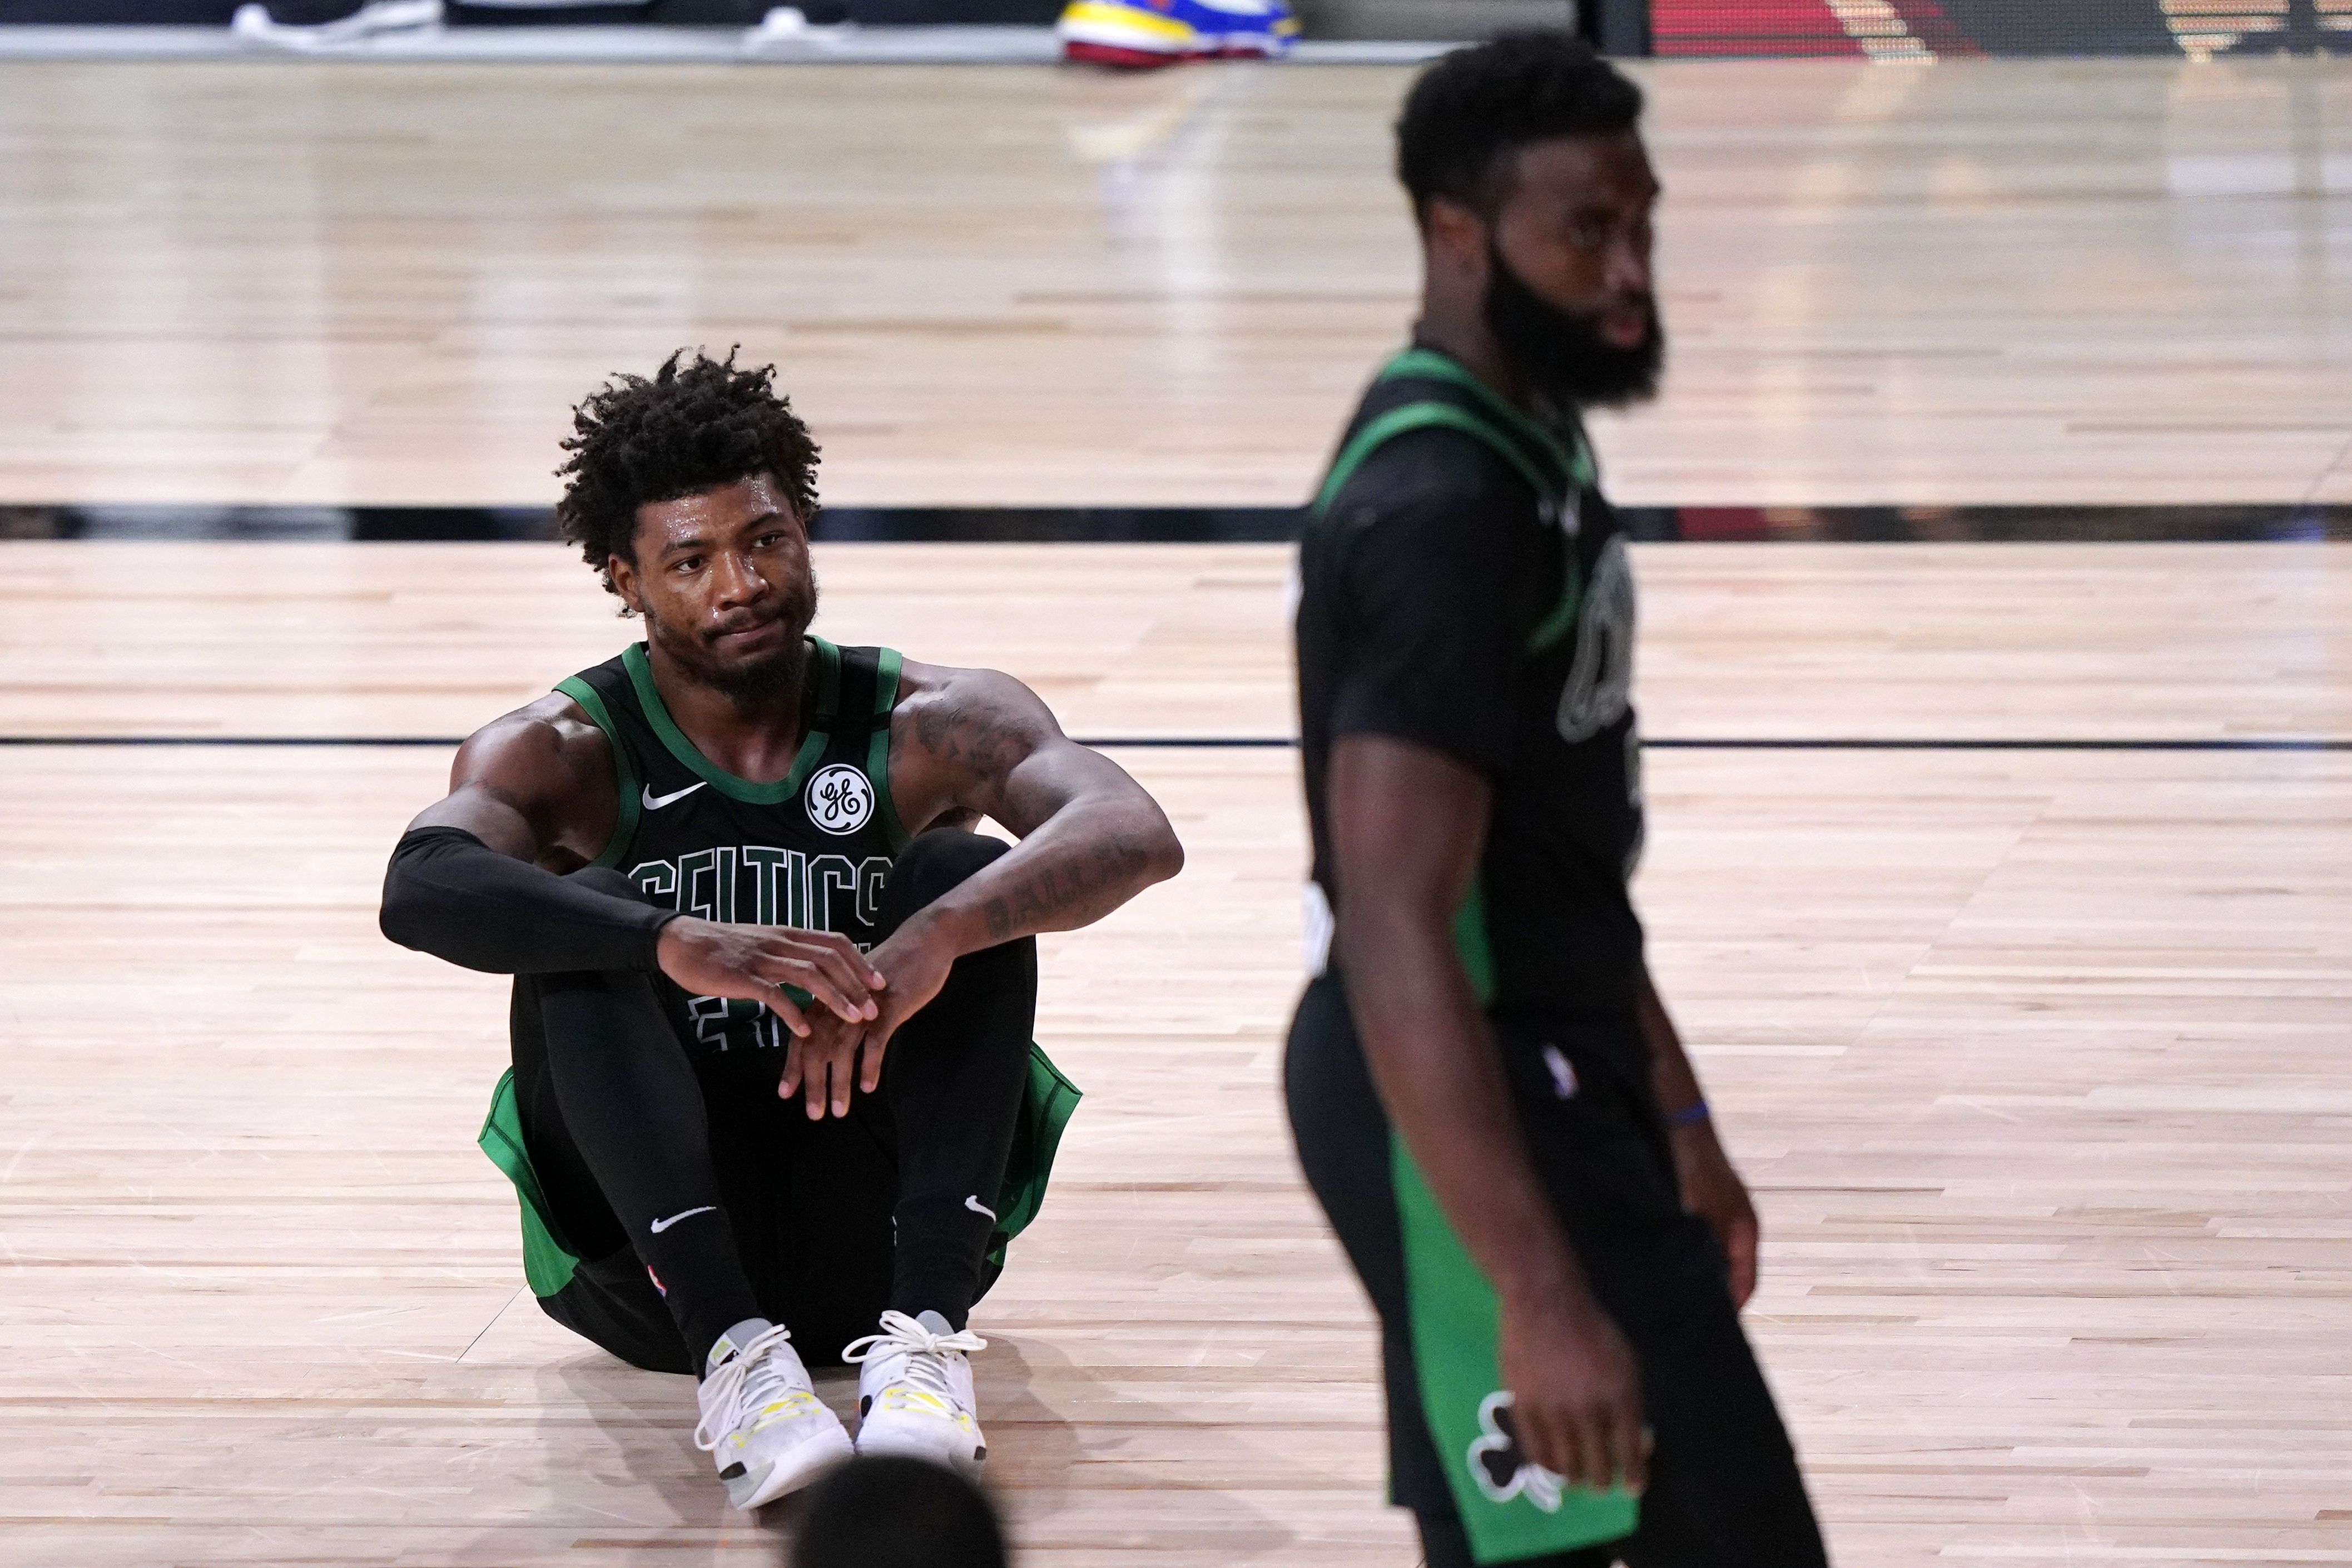 Celtics Lost Their Cool Following Loss To Heat Before Finally Talking It Out The Boston Globe